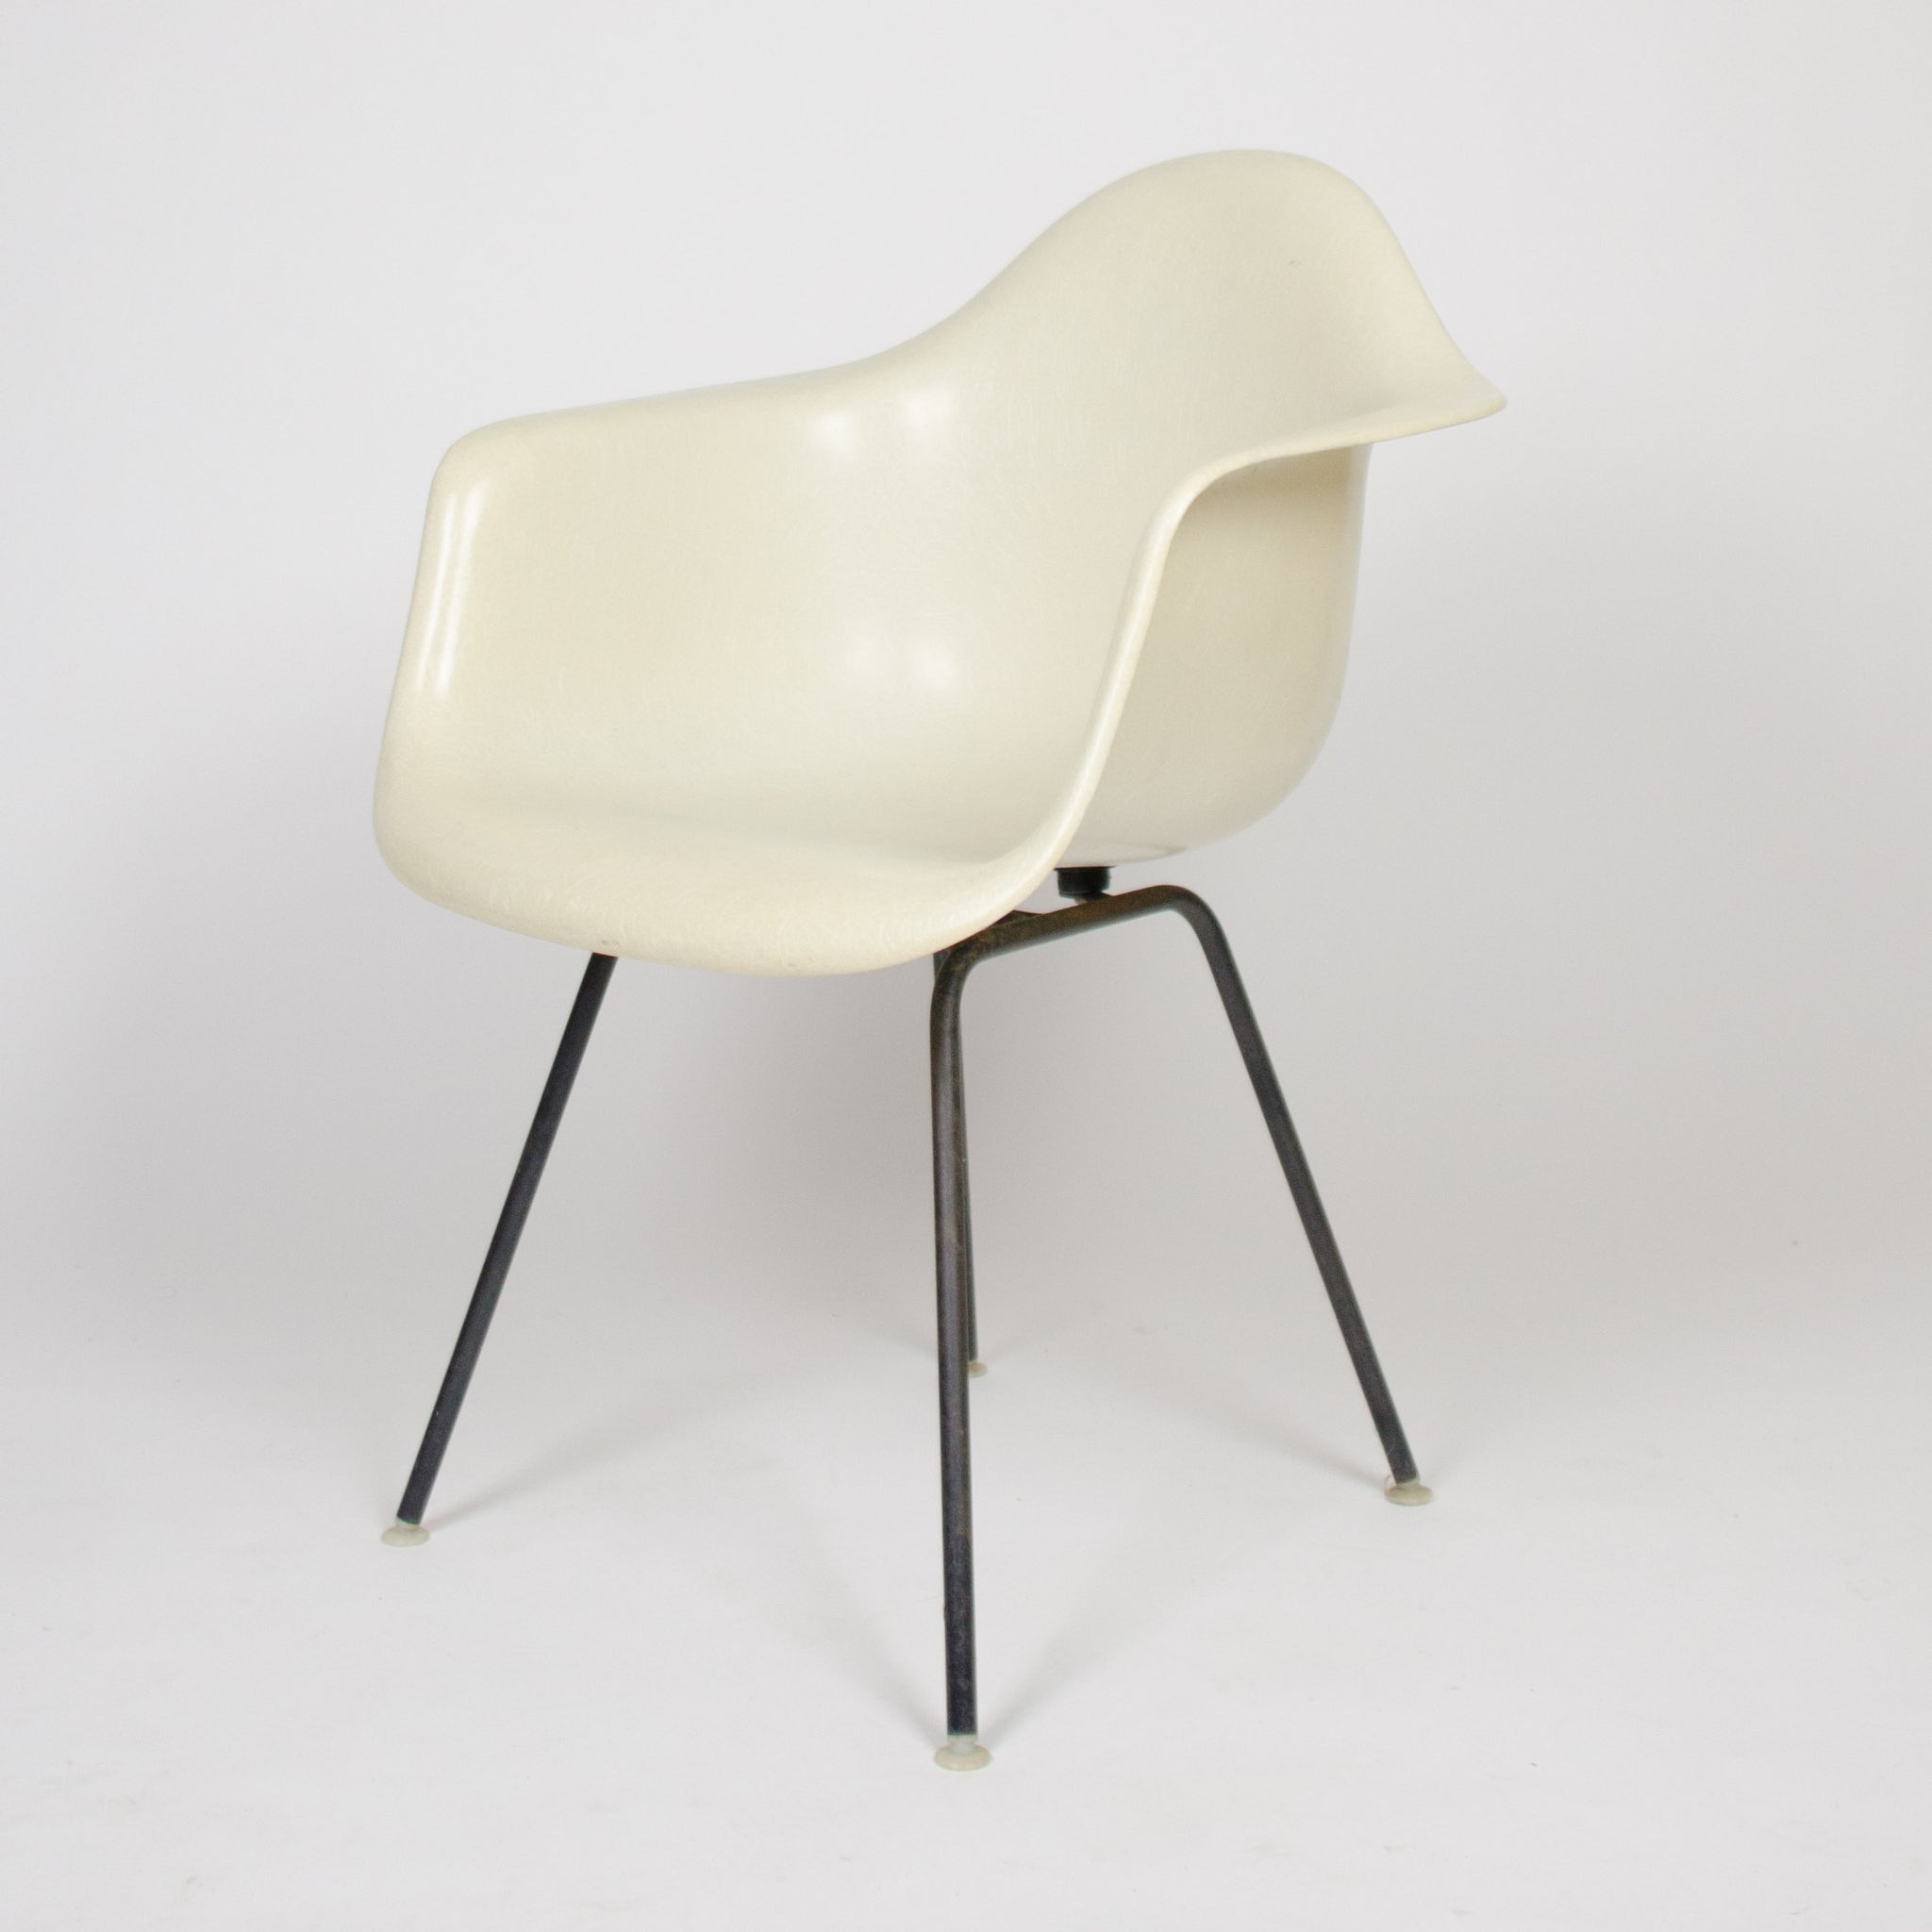 SOLD Herman Miller Eames 1950's Ivory / White Fiberglass Shell Chairs Arm Shells 2x